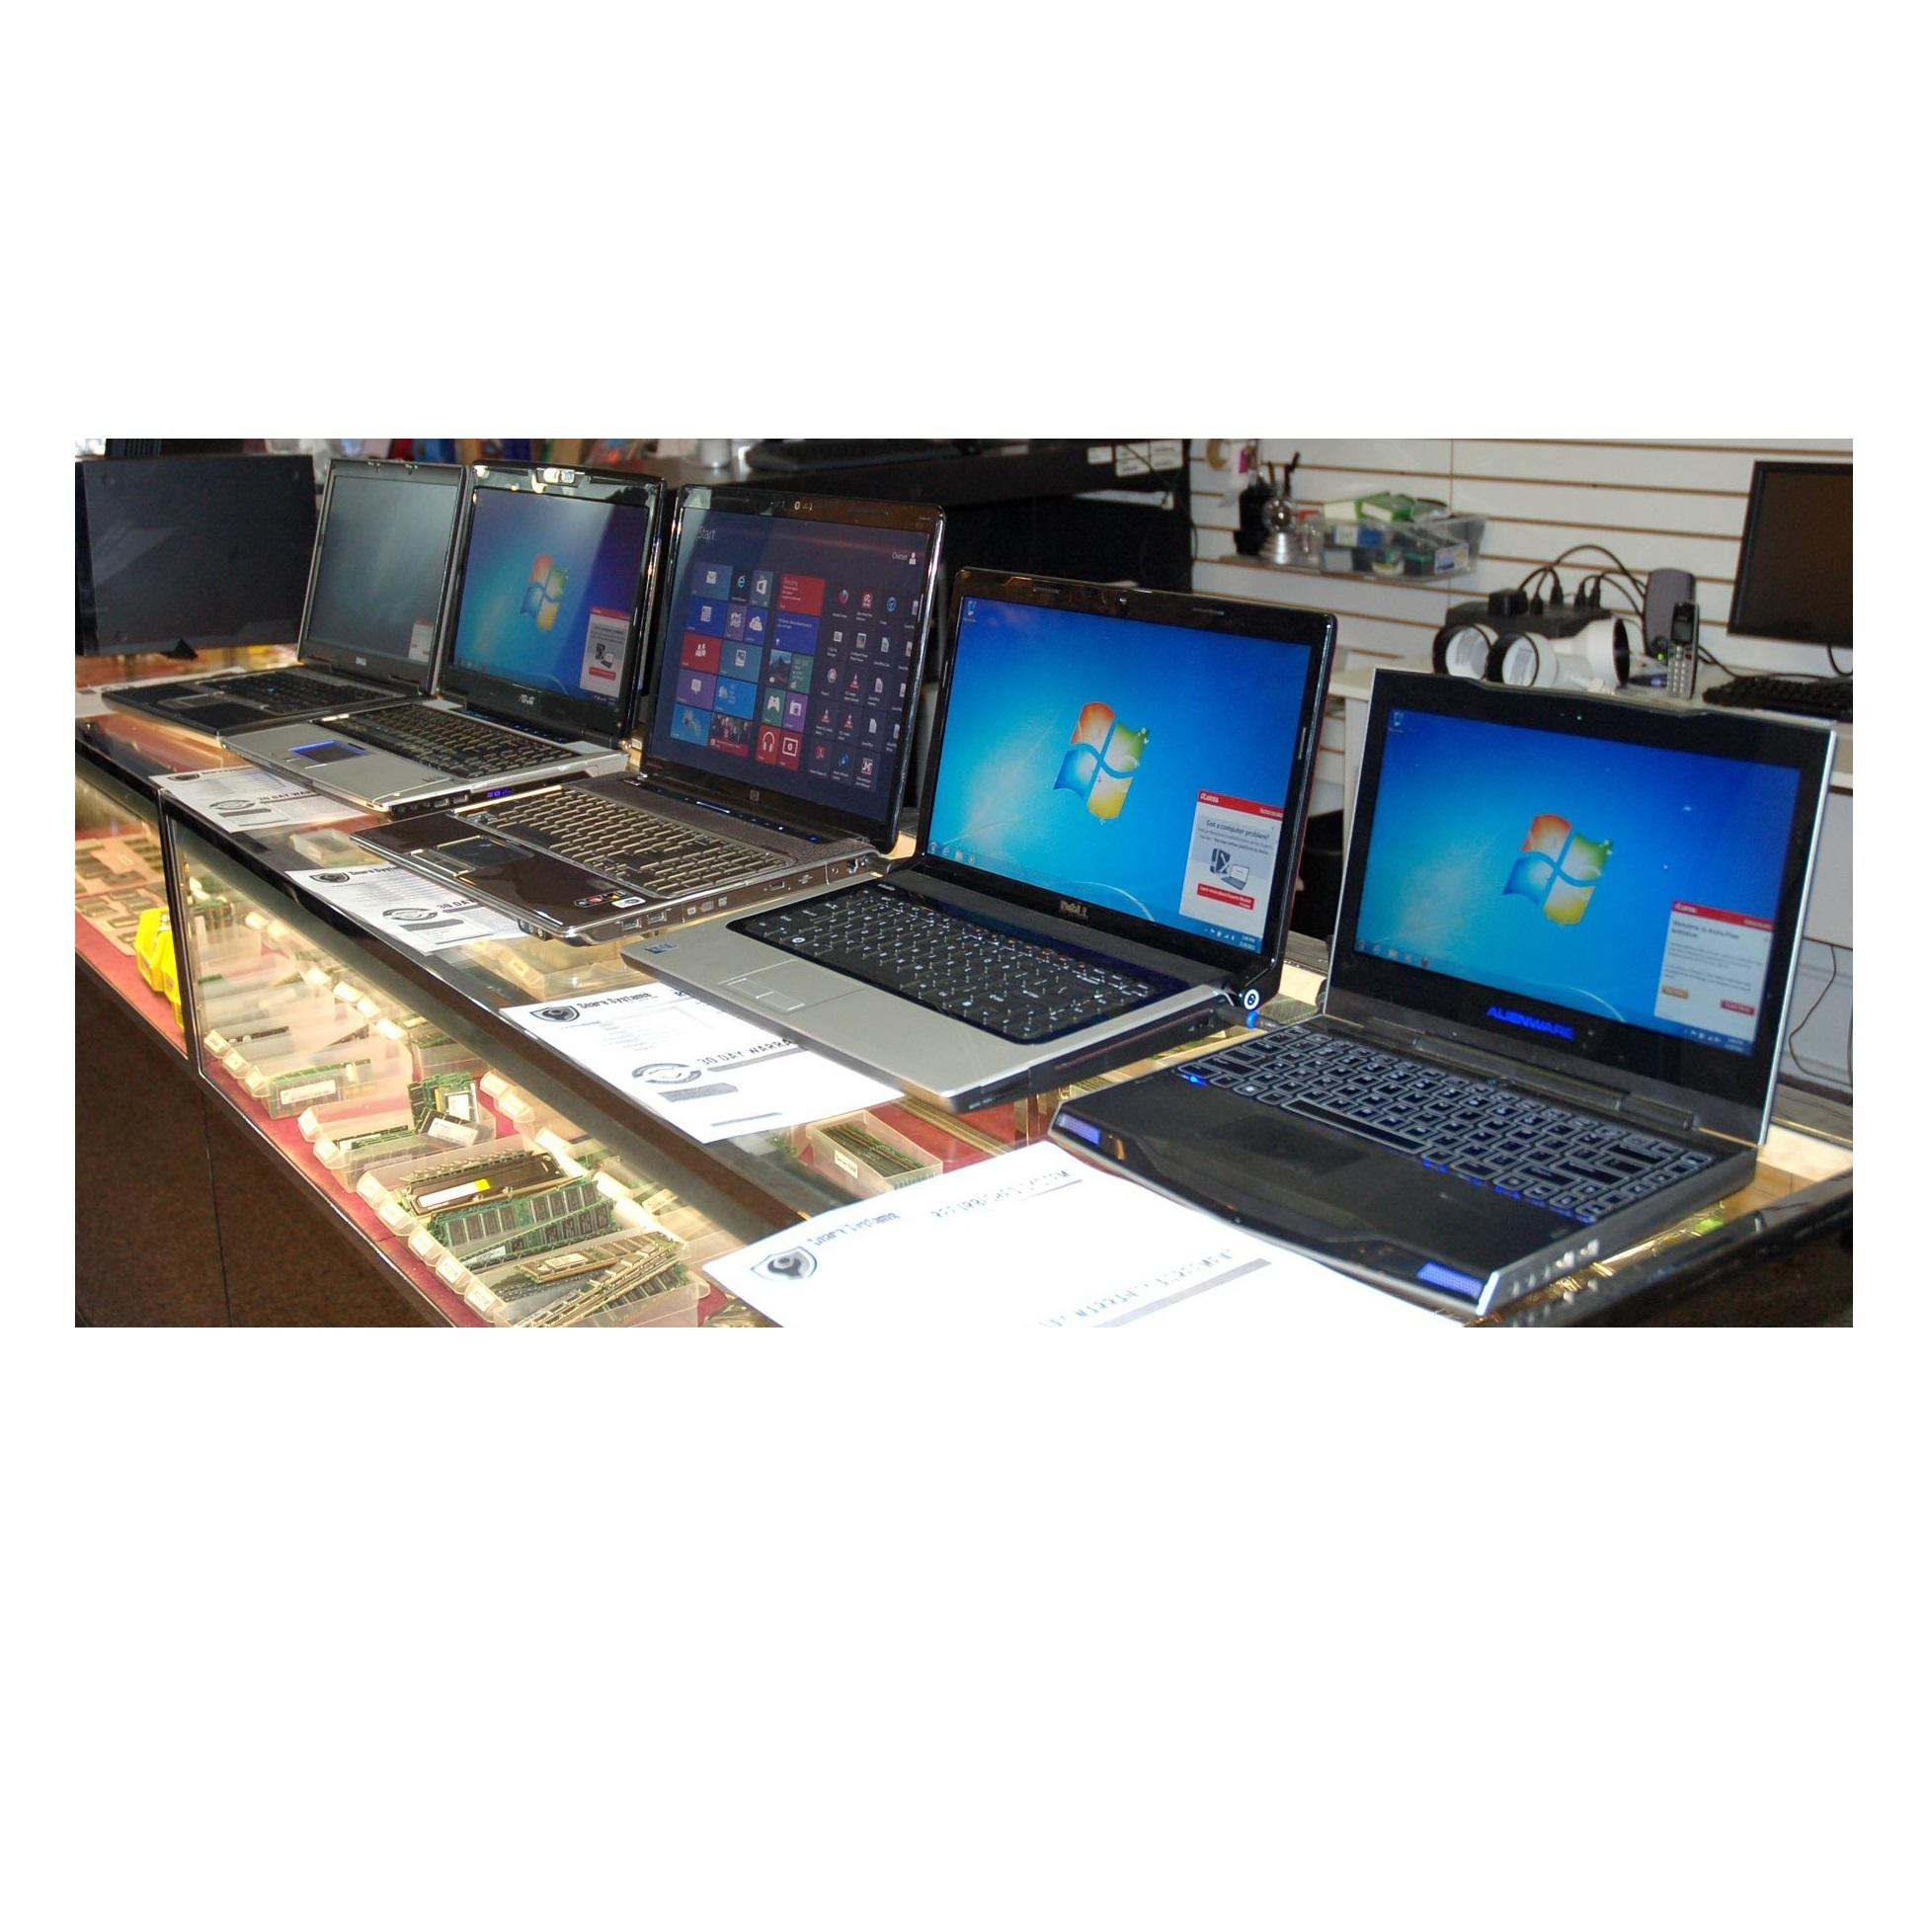 Hot sale Price Of USED Fairly LAPTOPS in Bulk